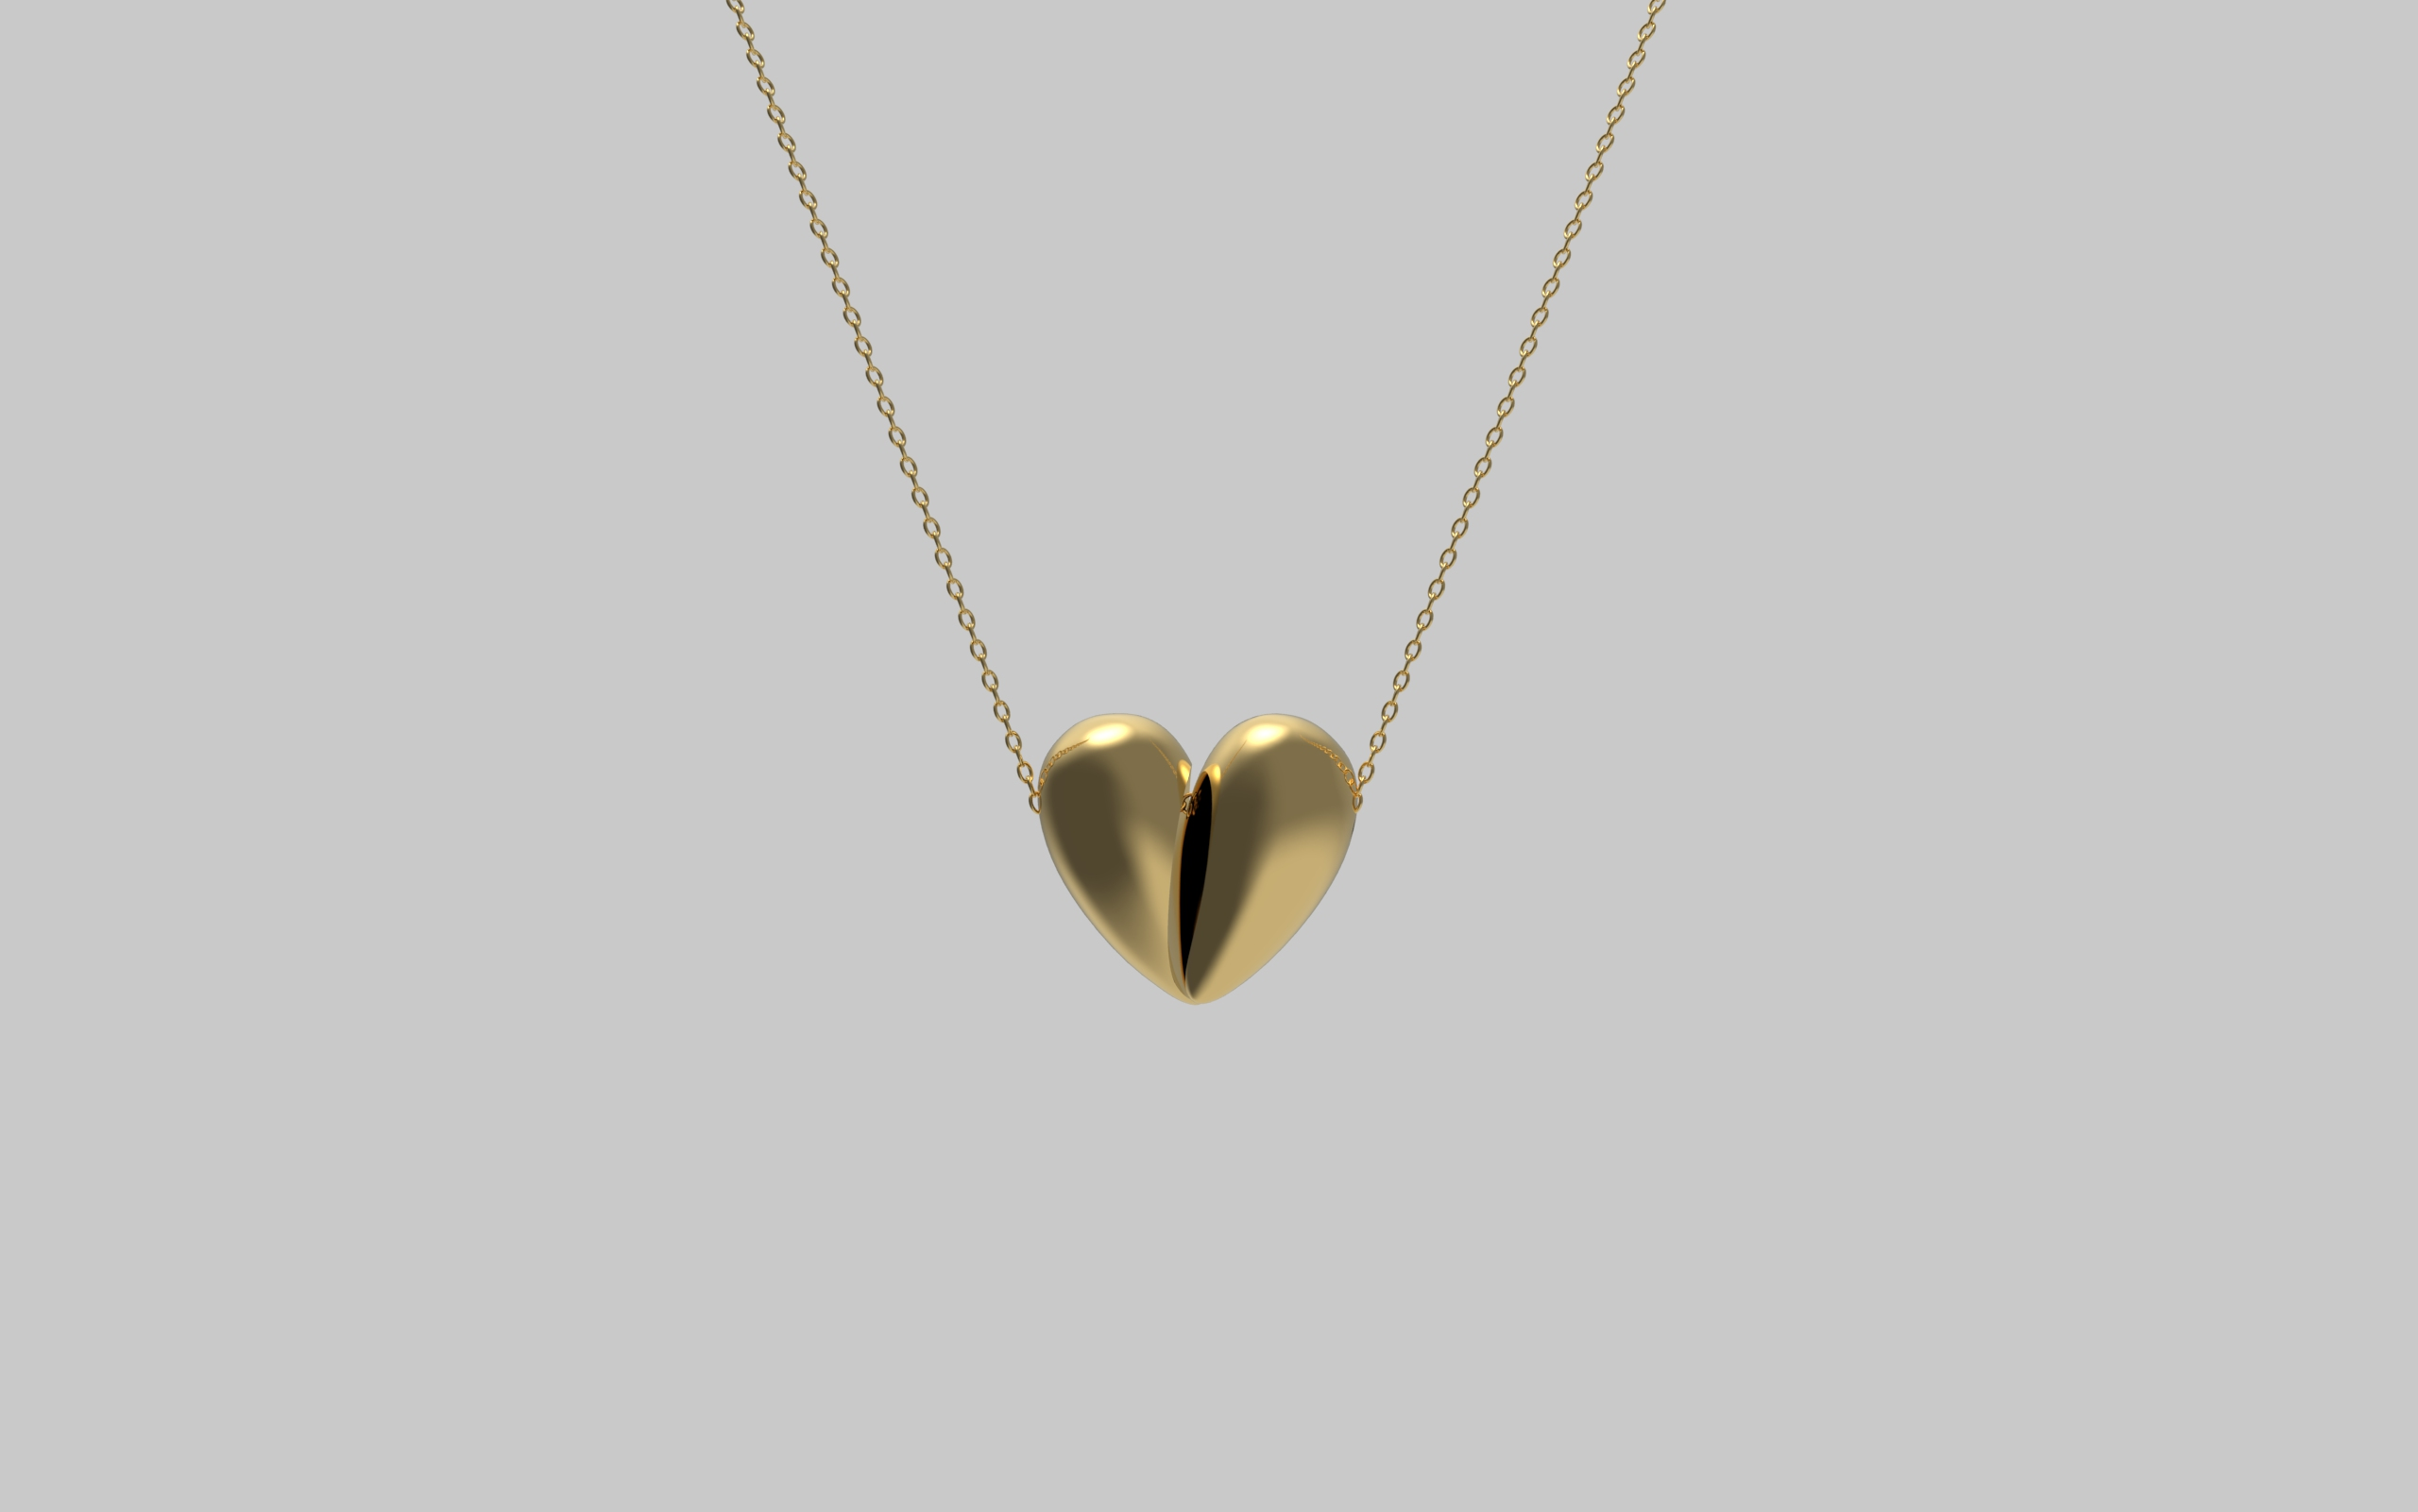 Black Love Pendant in 18kt Yellow Gold. Image Courtesy of J Rabun